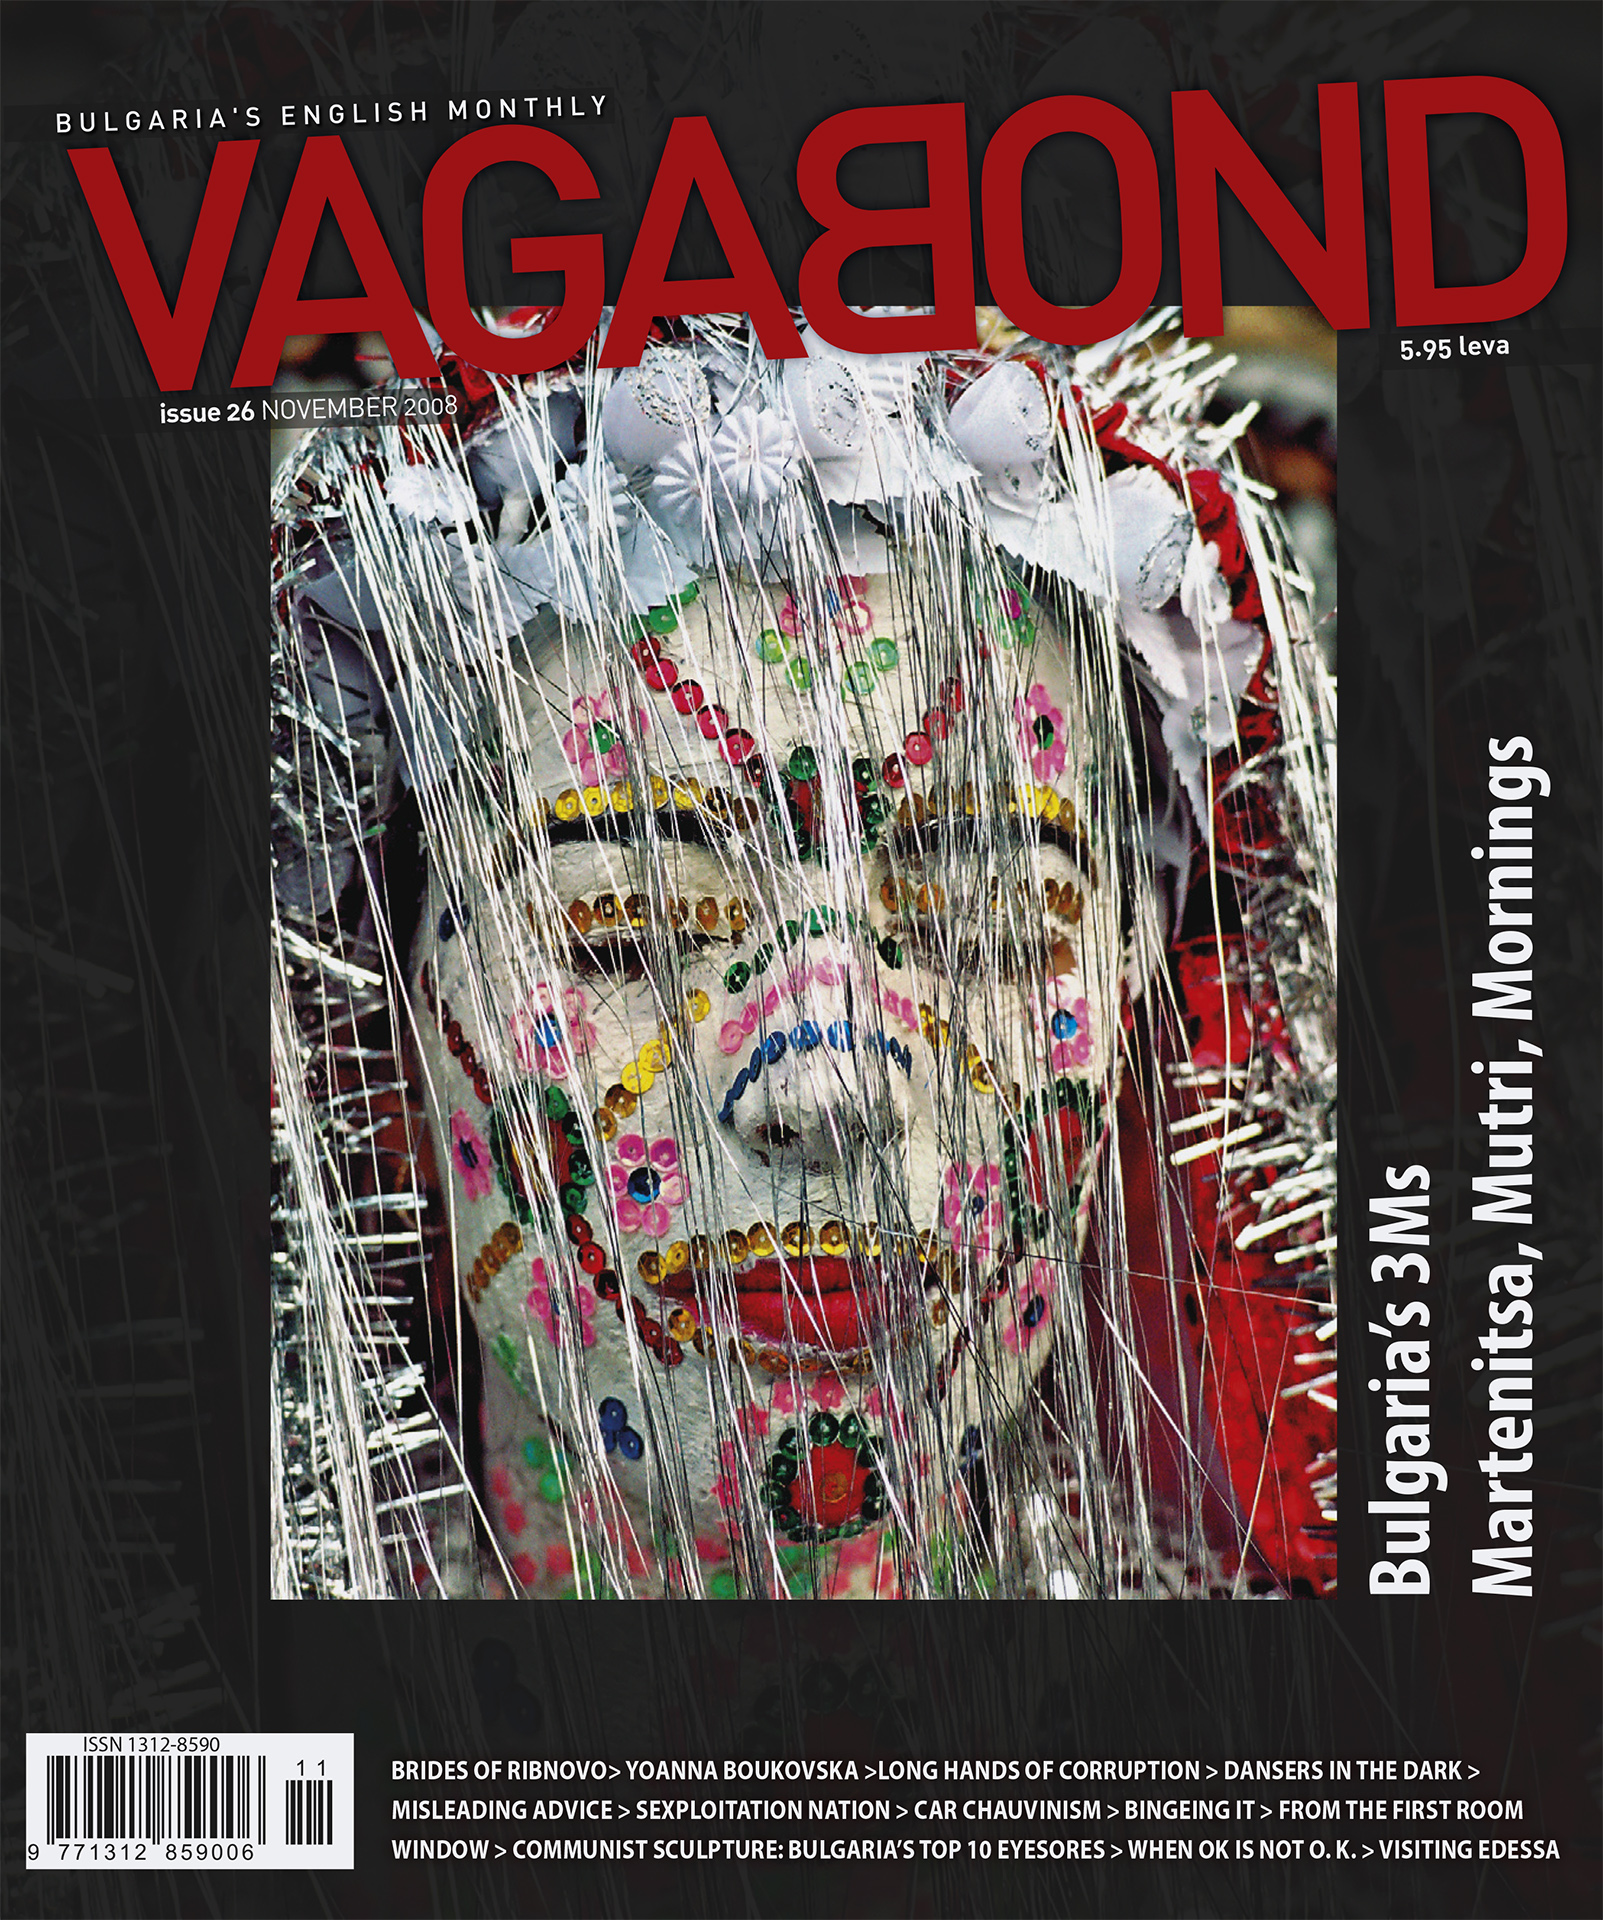 cover issue 26, November 2008